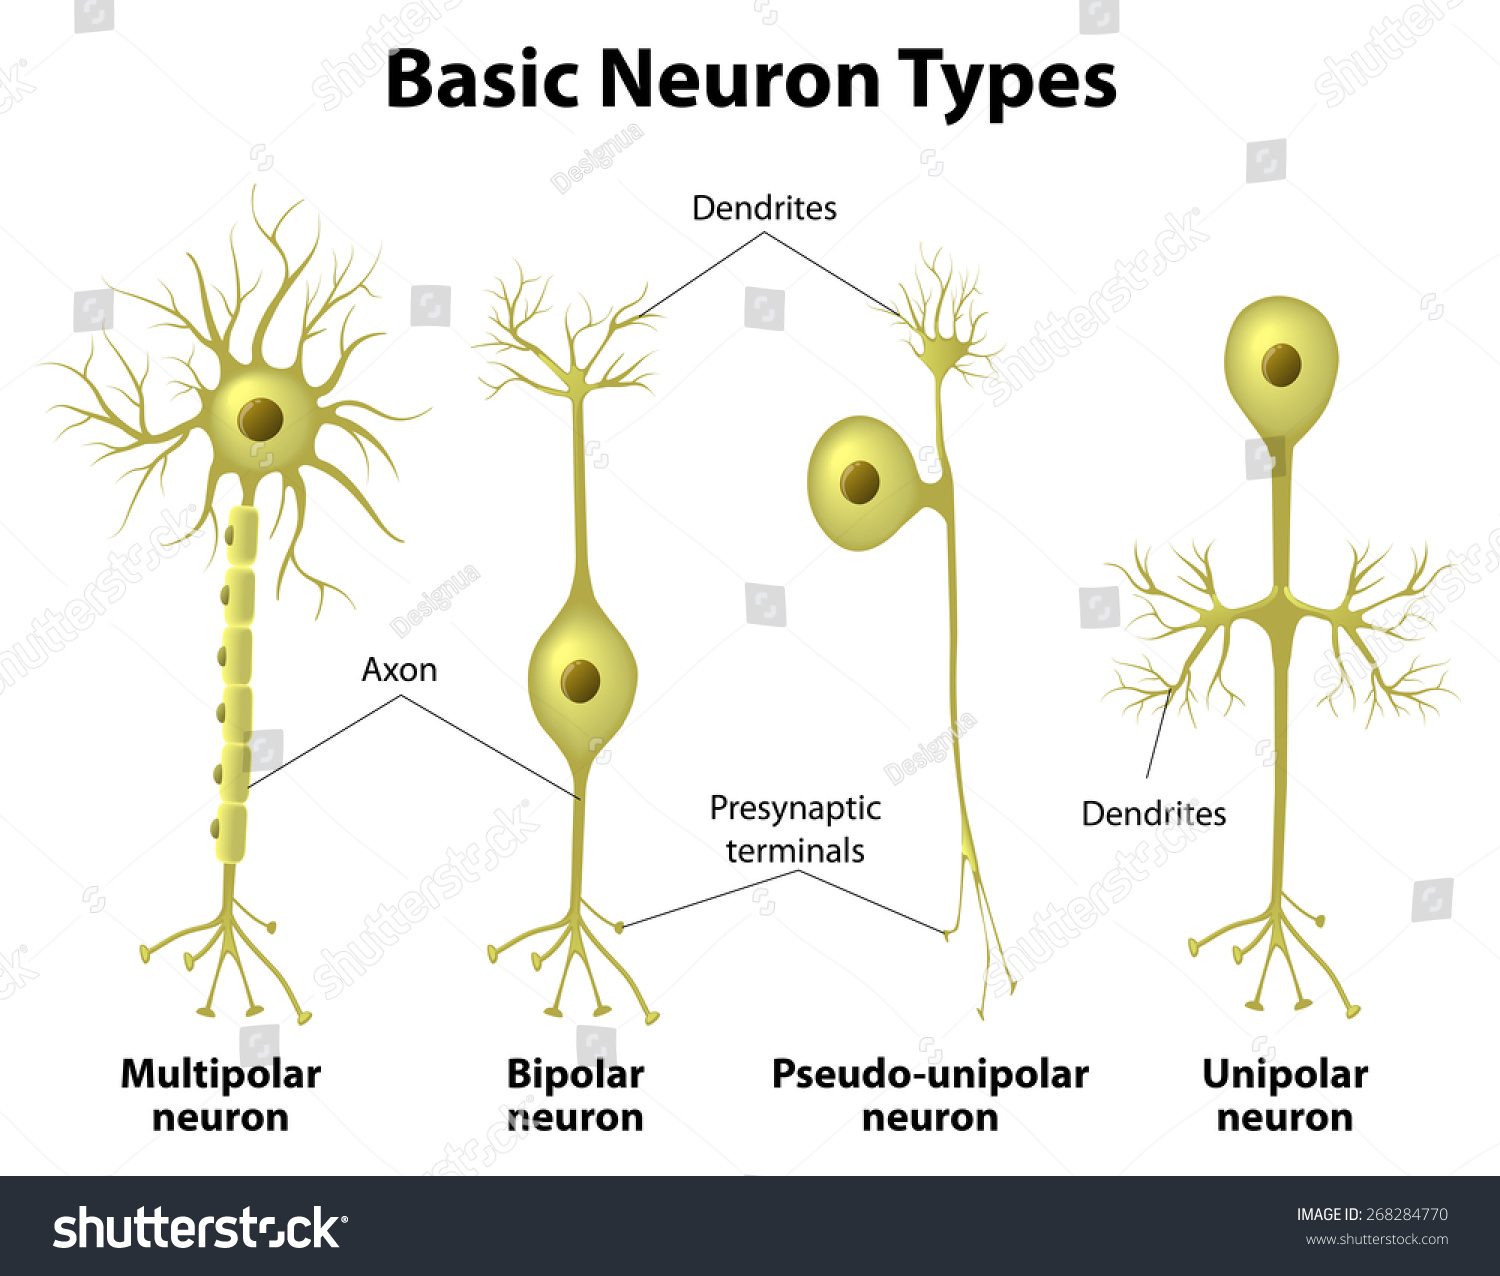 neurons the basic elements of behavior Neurons the basic elements of behavior essayelements 1 neurons: the basic elements of behavior introduction to psychology 101 elements 2 the basic elements of behavior the human body is a tremendous creation that is quite capable of performing a multitude of multifaceted movements and thoughts.